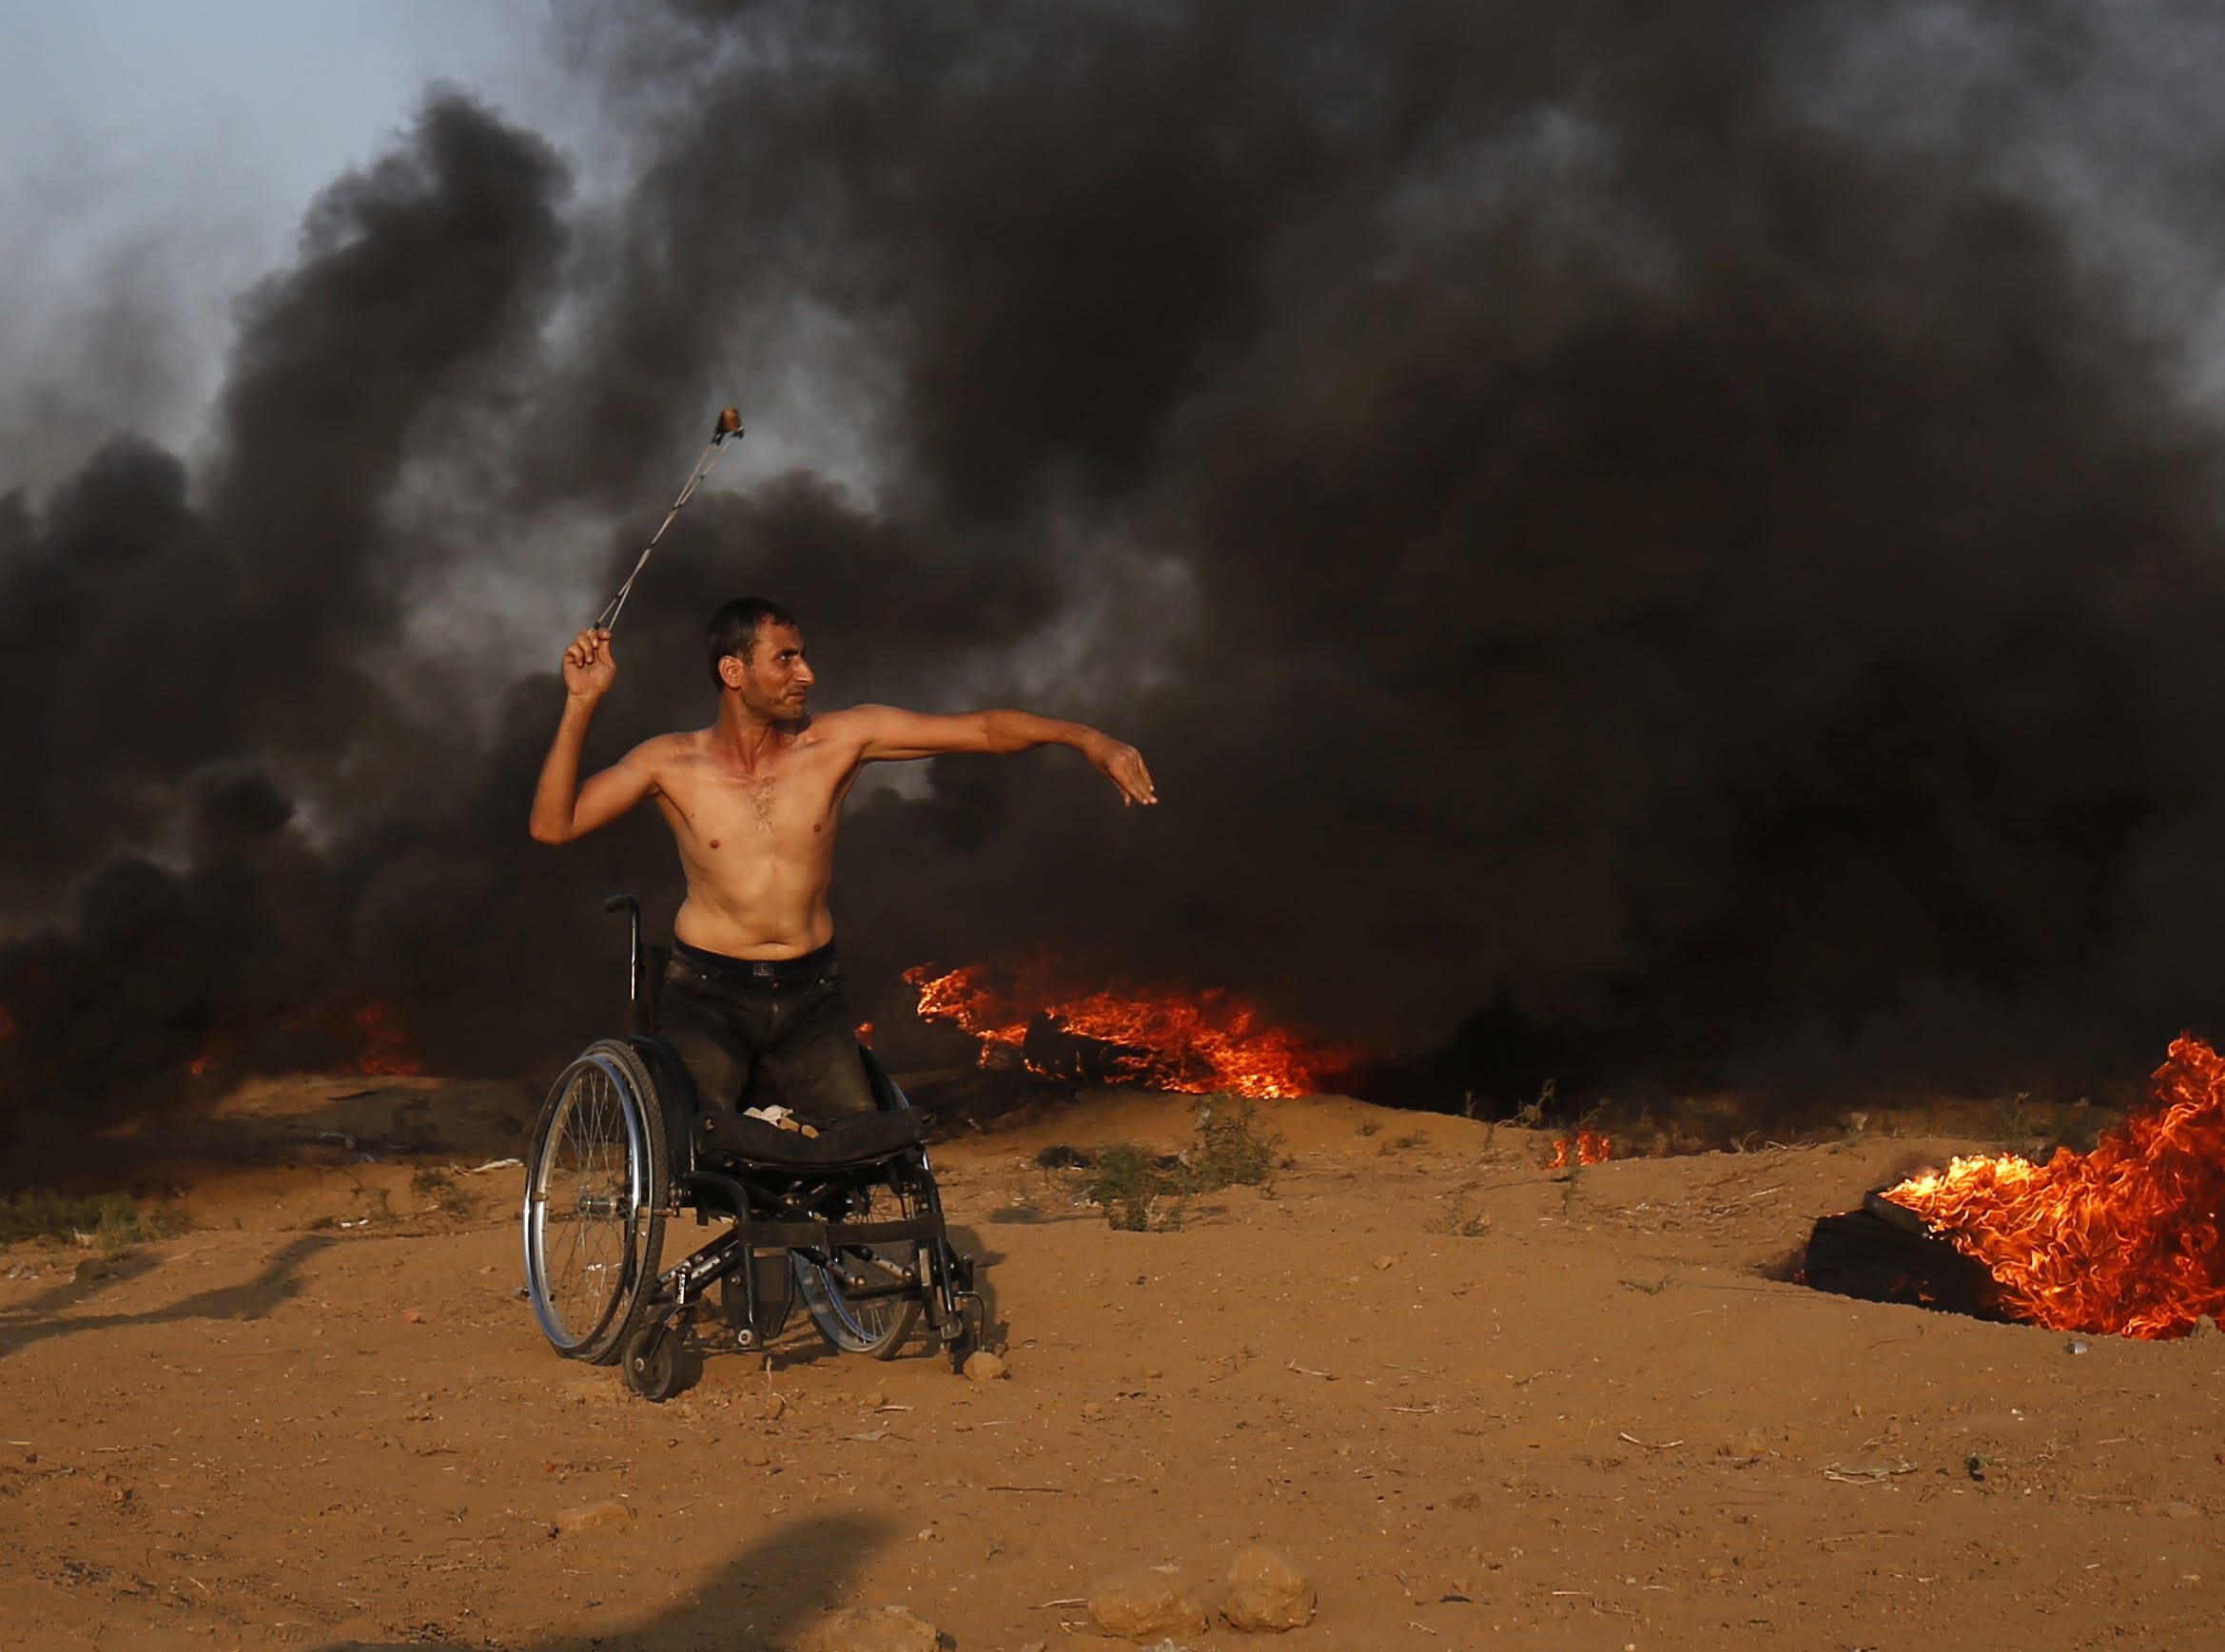 A Palestinian protester in a wheelchair throws a stone toward Israeli forces during clashes along the Israeli border fence, east of Gaza City on Friday, Sept. 28, 2018.